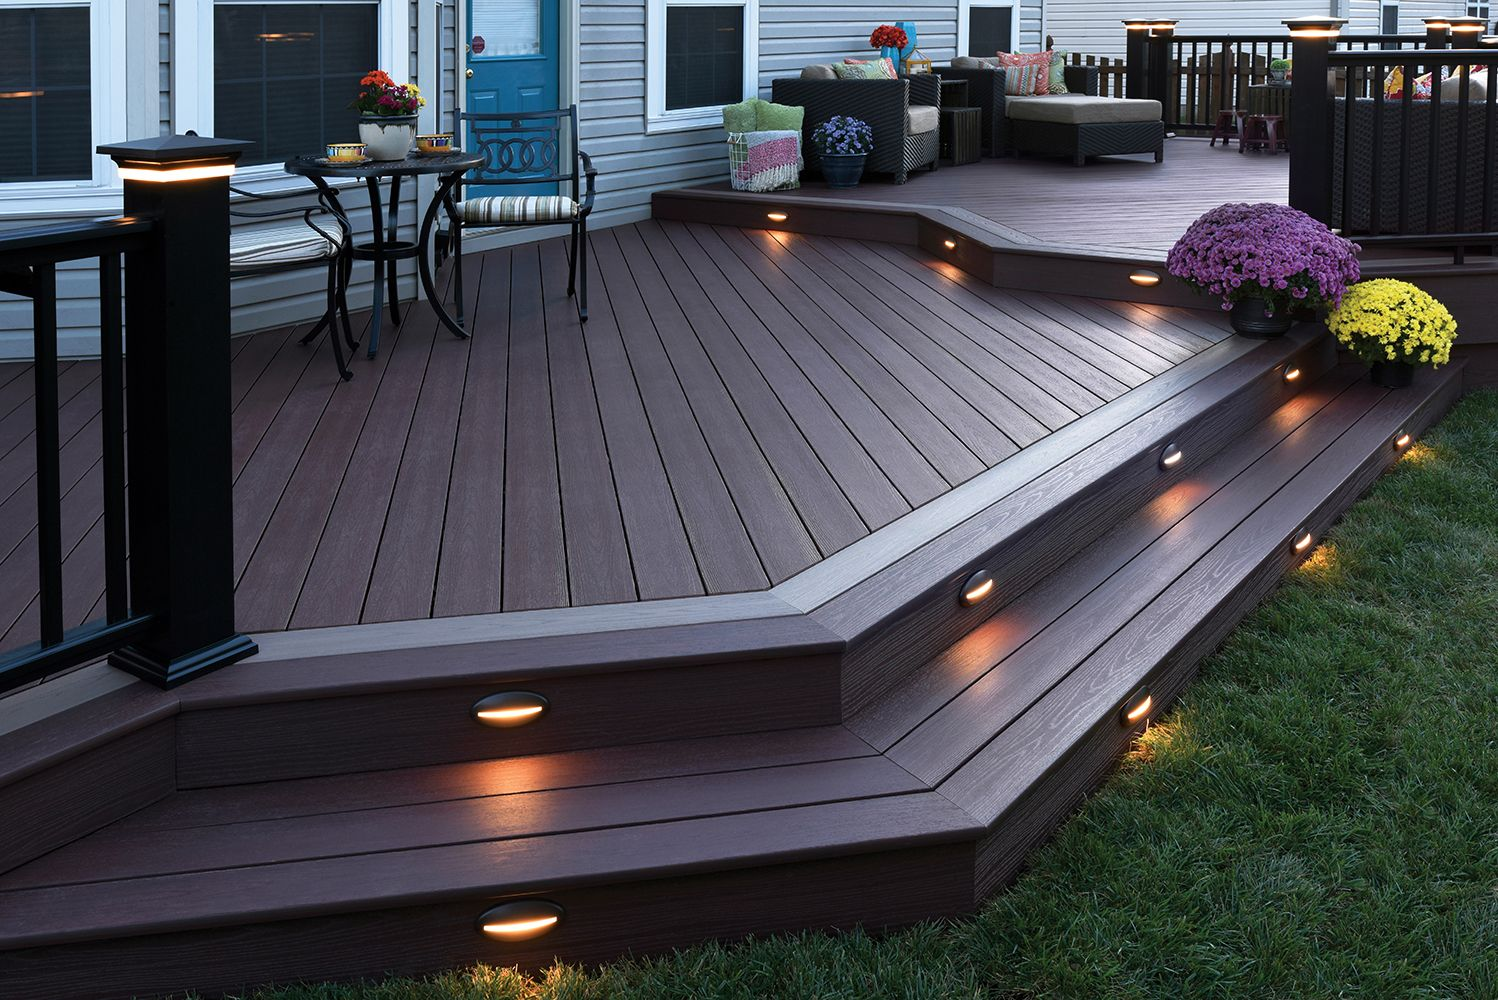 Azek Decking With Post Cap And And Riser Lights A Beautiful Way To Keep Your Backyard Lit At Night Deck Designs Backyard Patio Deck Designs Patio Design Modern backyard deck design ideas